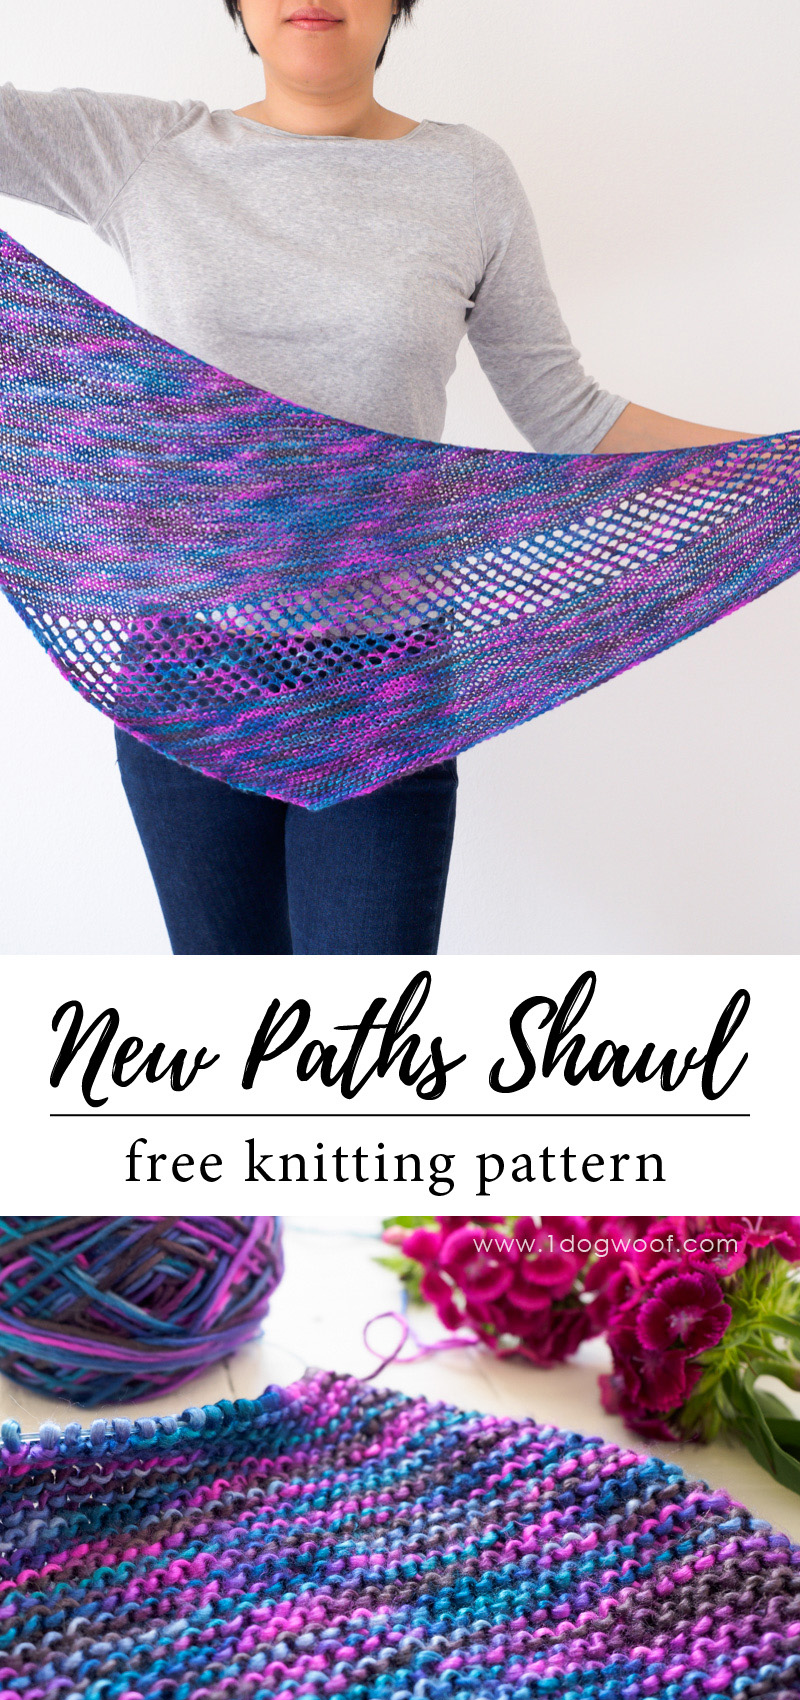 New Paths Shawl for pinning